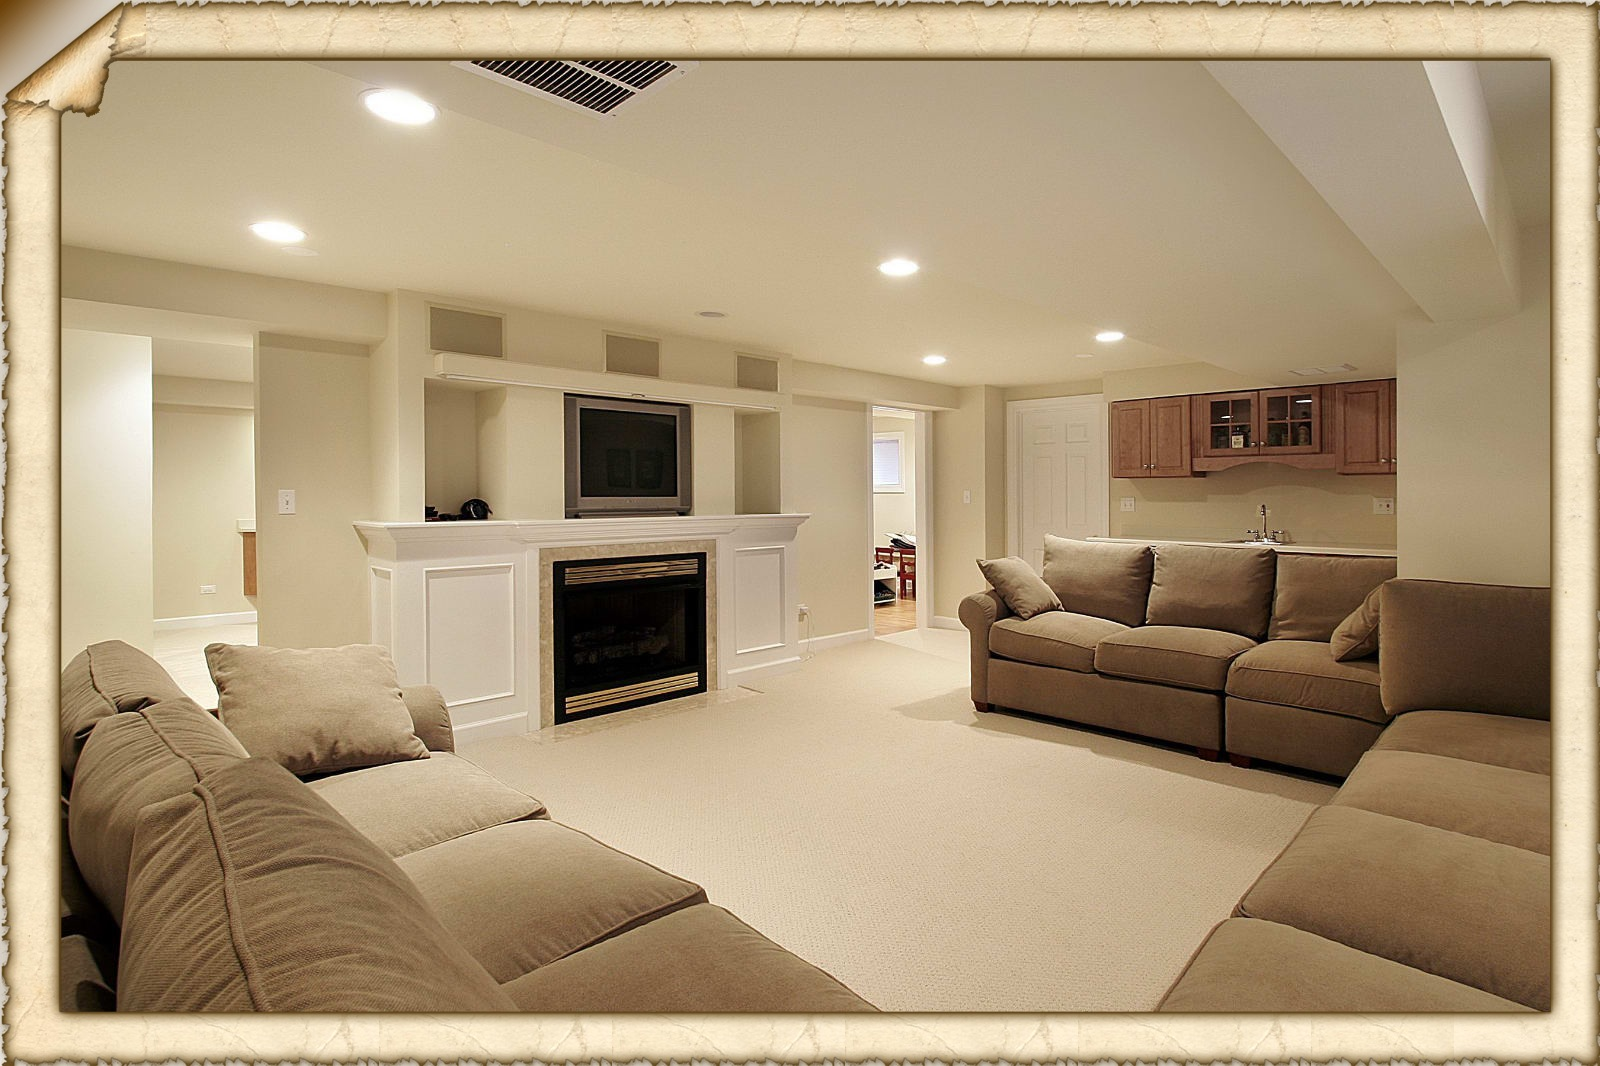 Remodeling Basement Ideas Easy To Follow Finished Basement Ideas Basement Bar Ideas